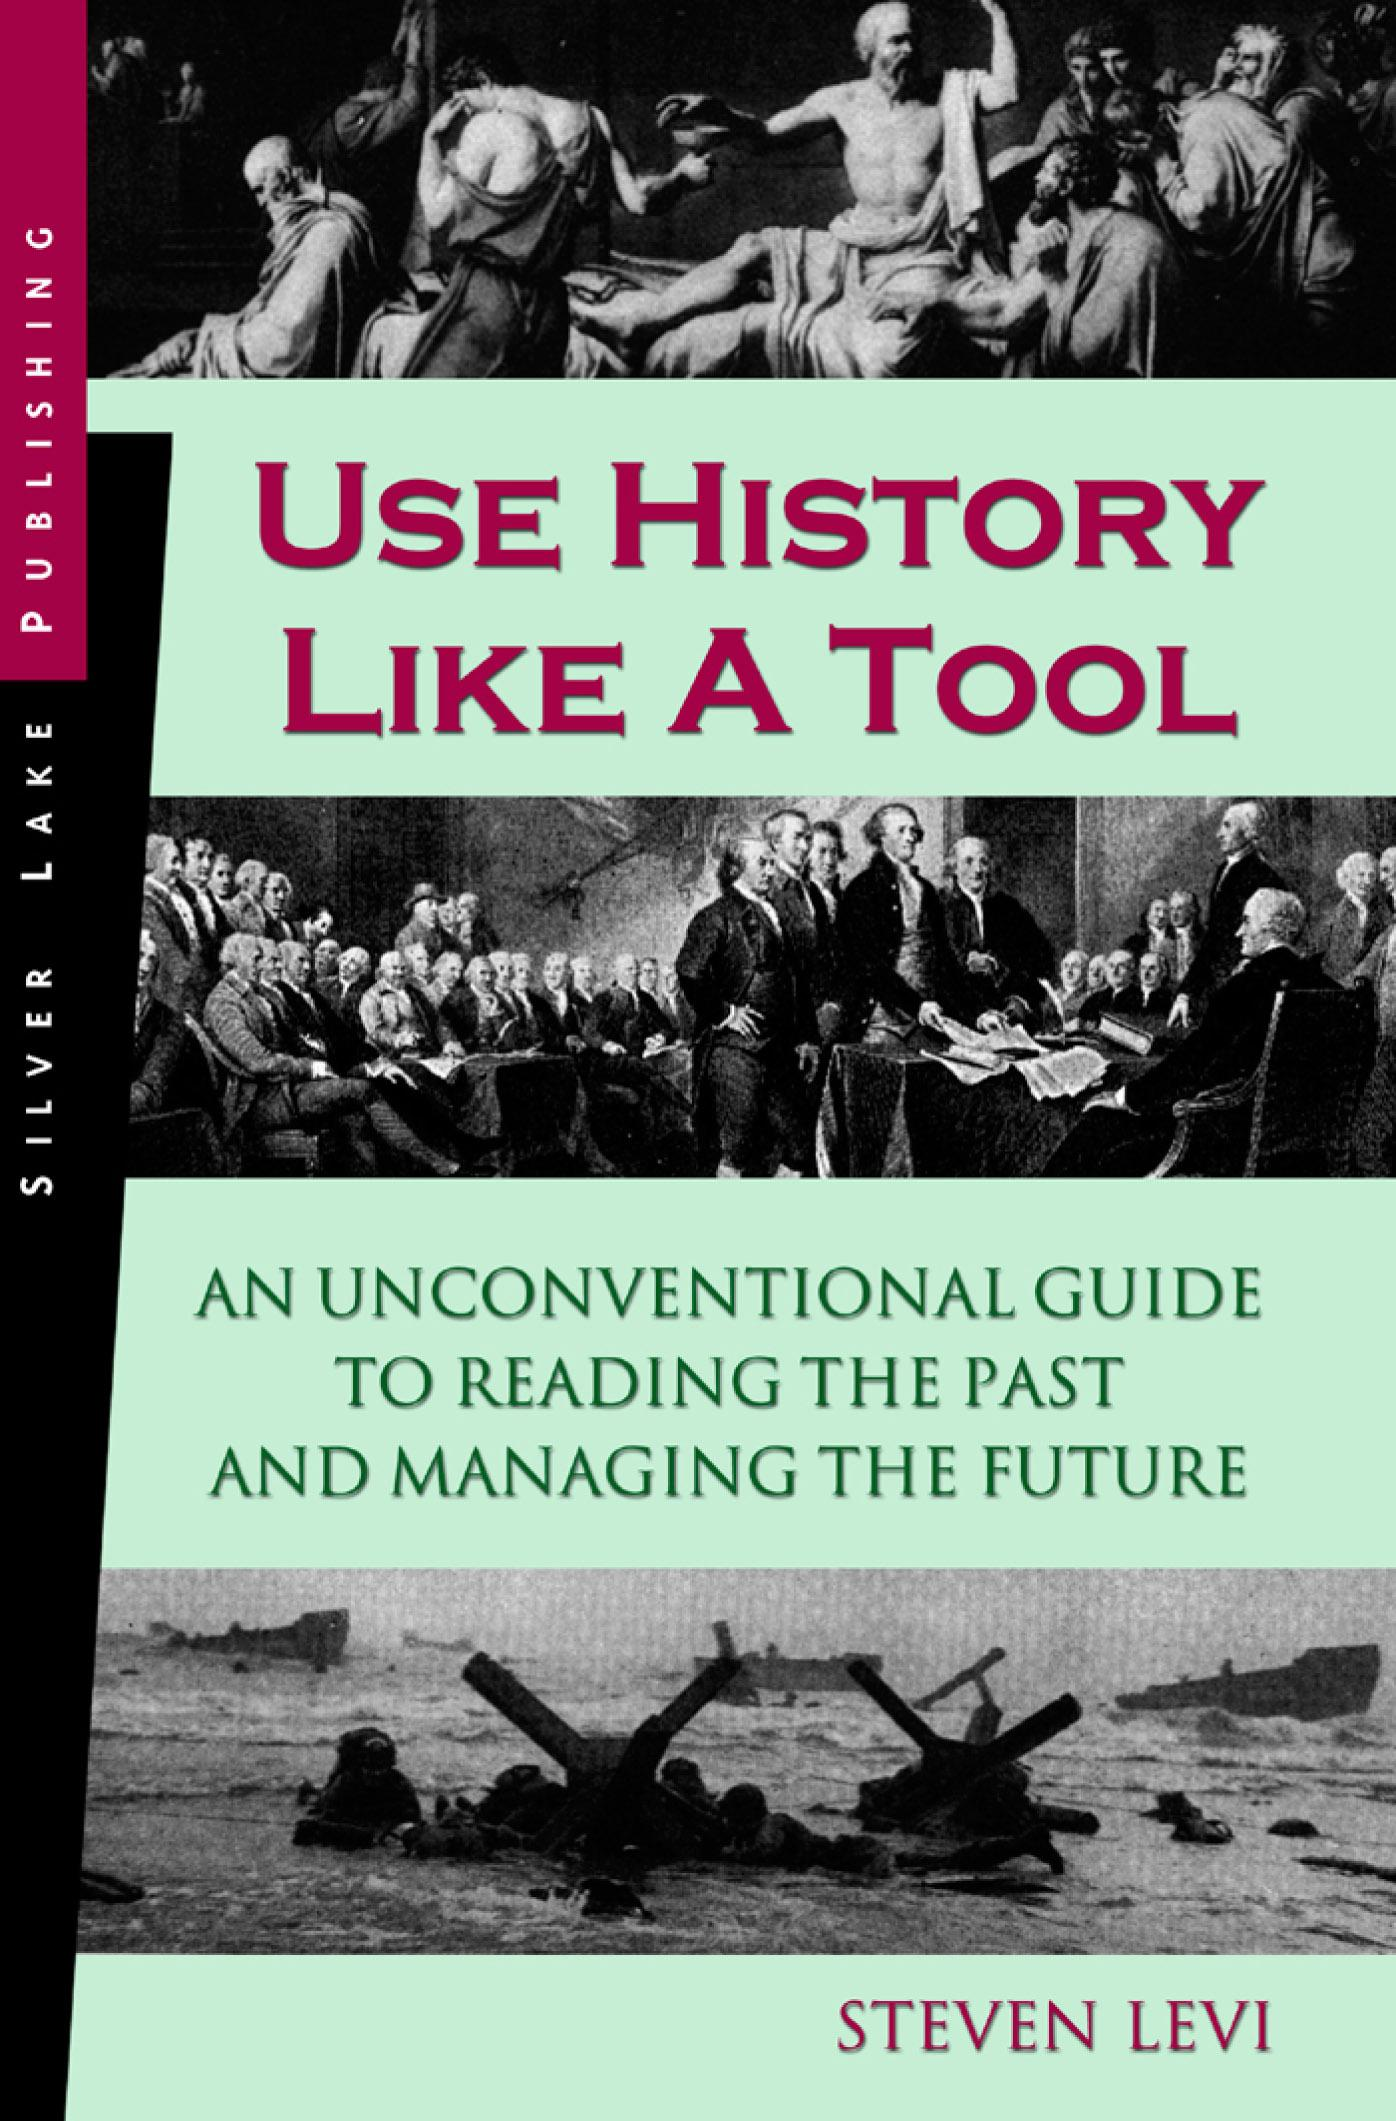 Use History Like a Tool: An Unconventional Guide to Reading the Past and Managing the Future EB9781563438066